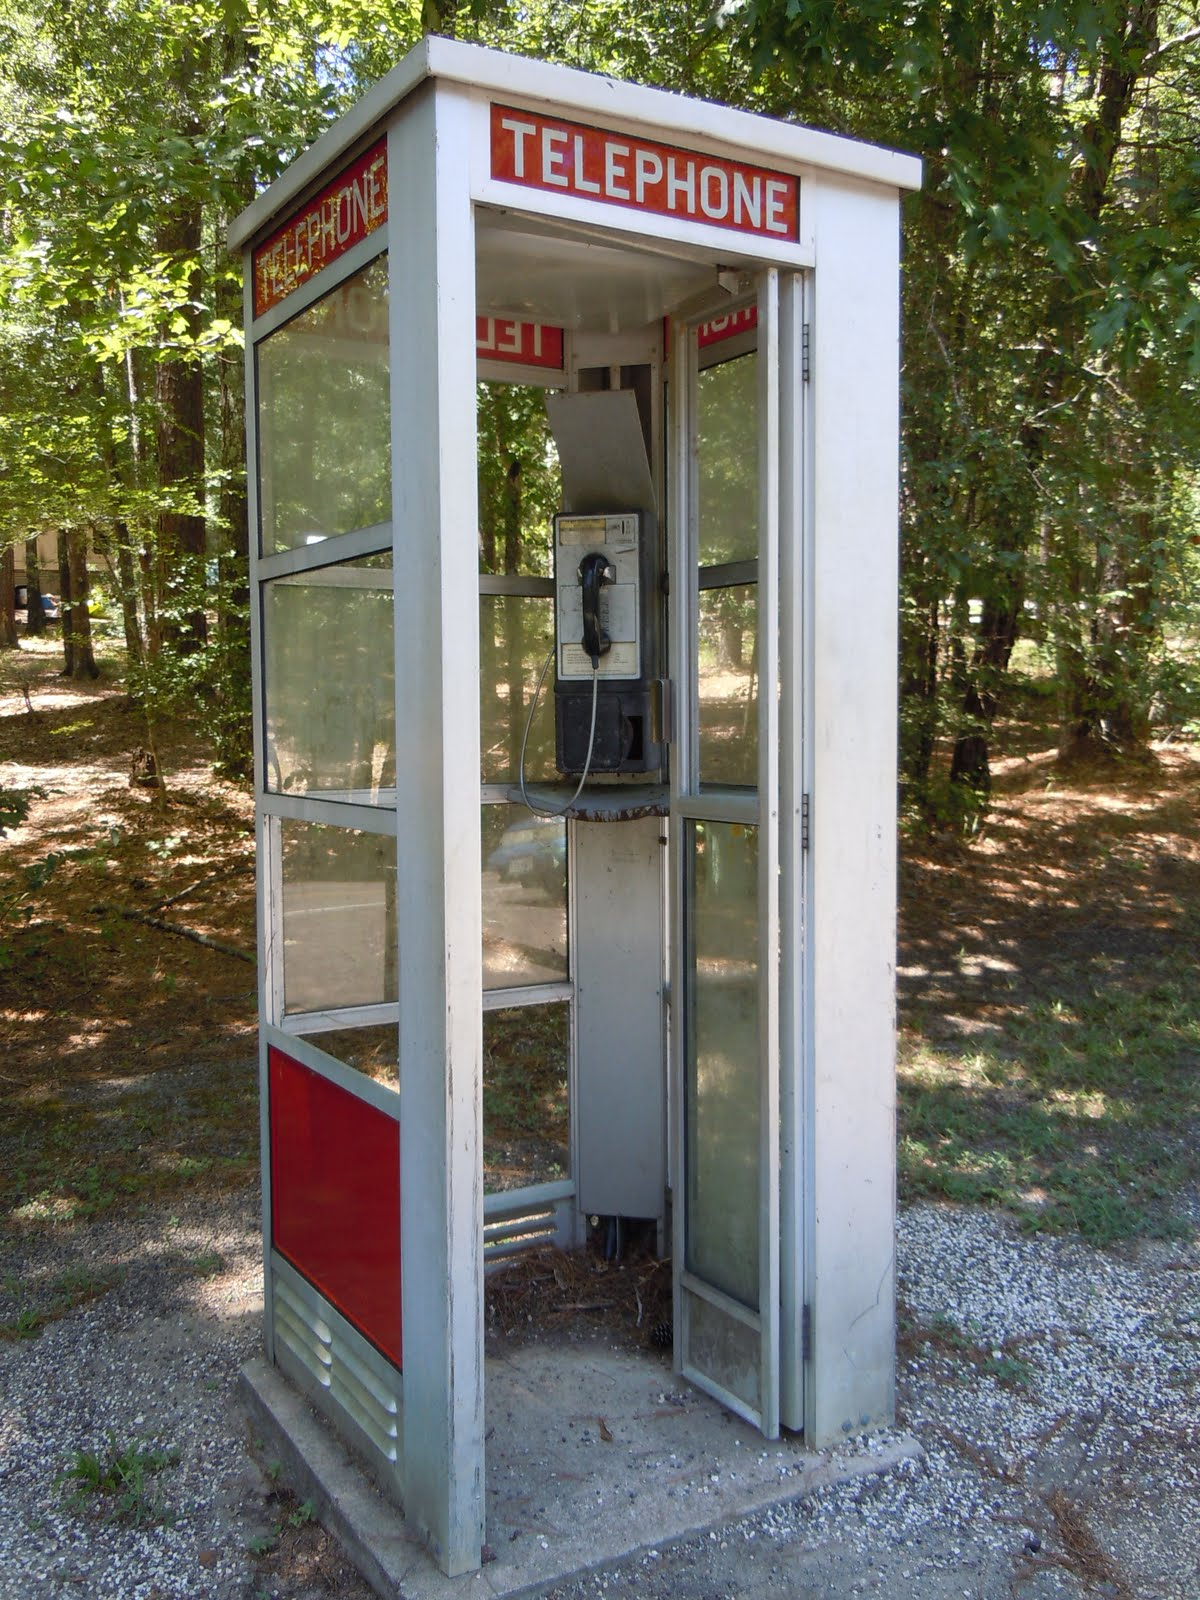 Telephone booth photo